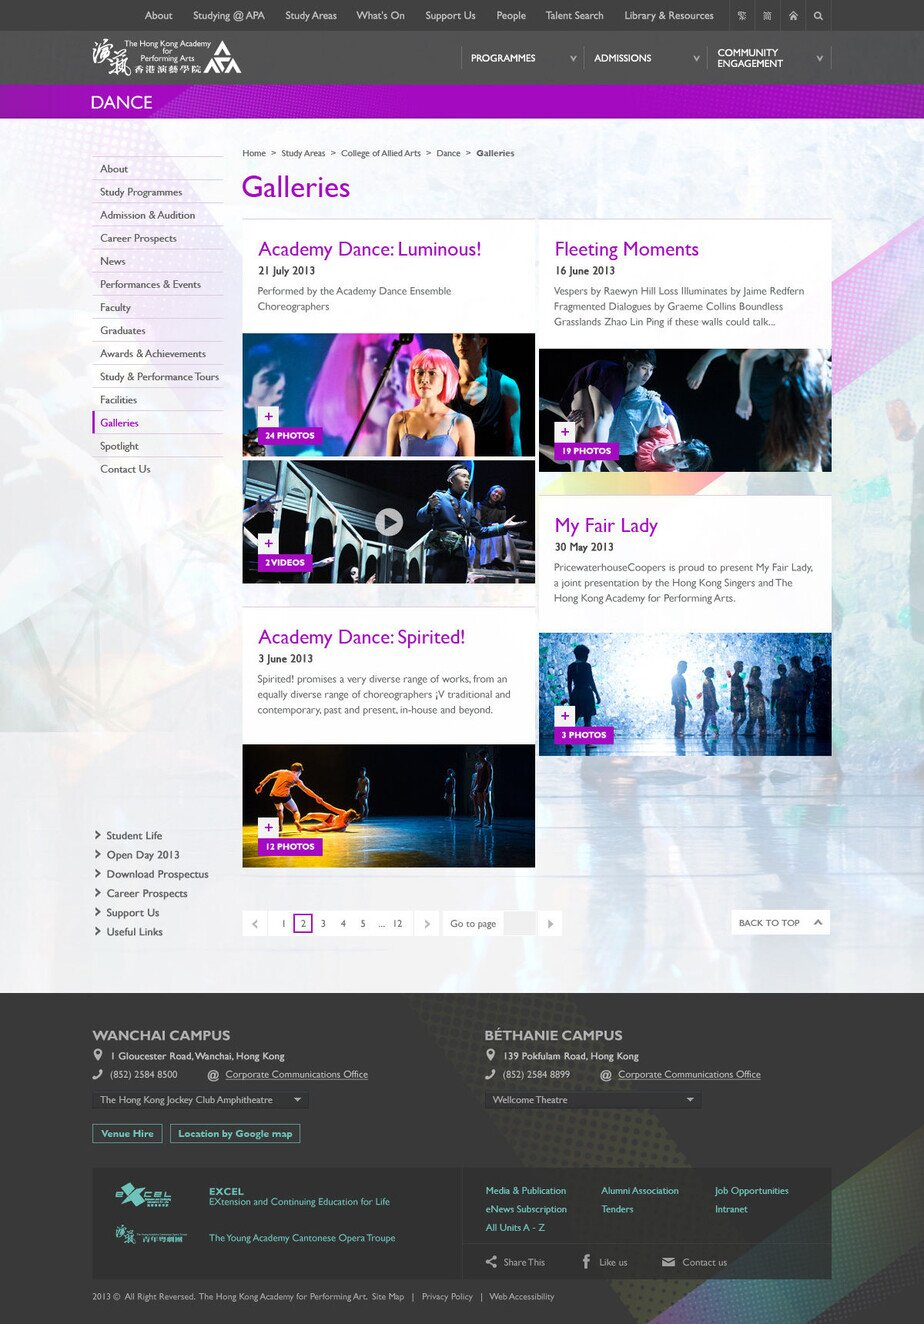 Hong Kong Academy for Performing Arts website screenshot for desktop version 6 of 10